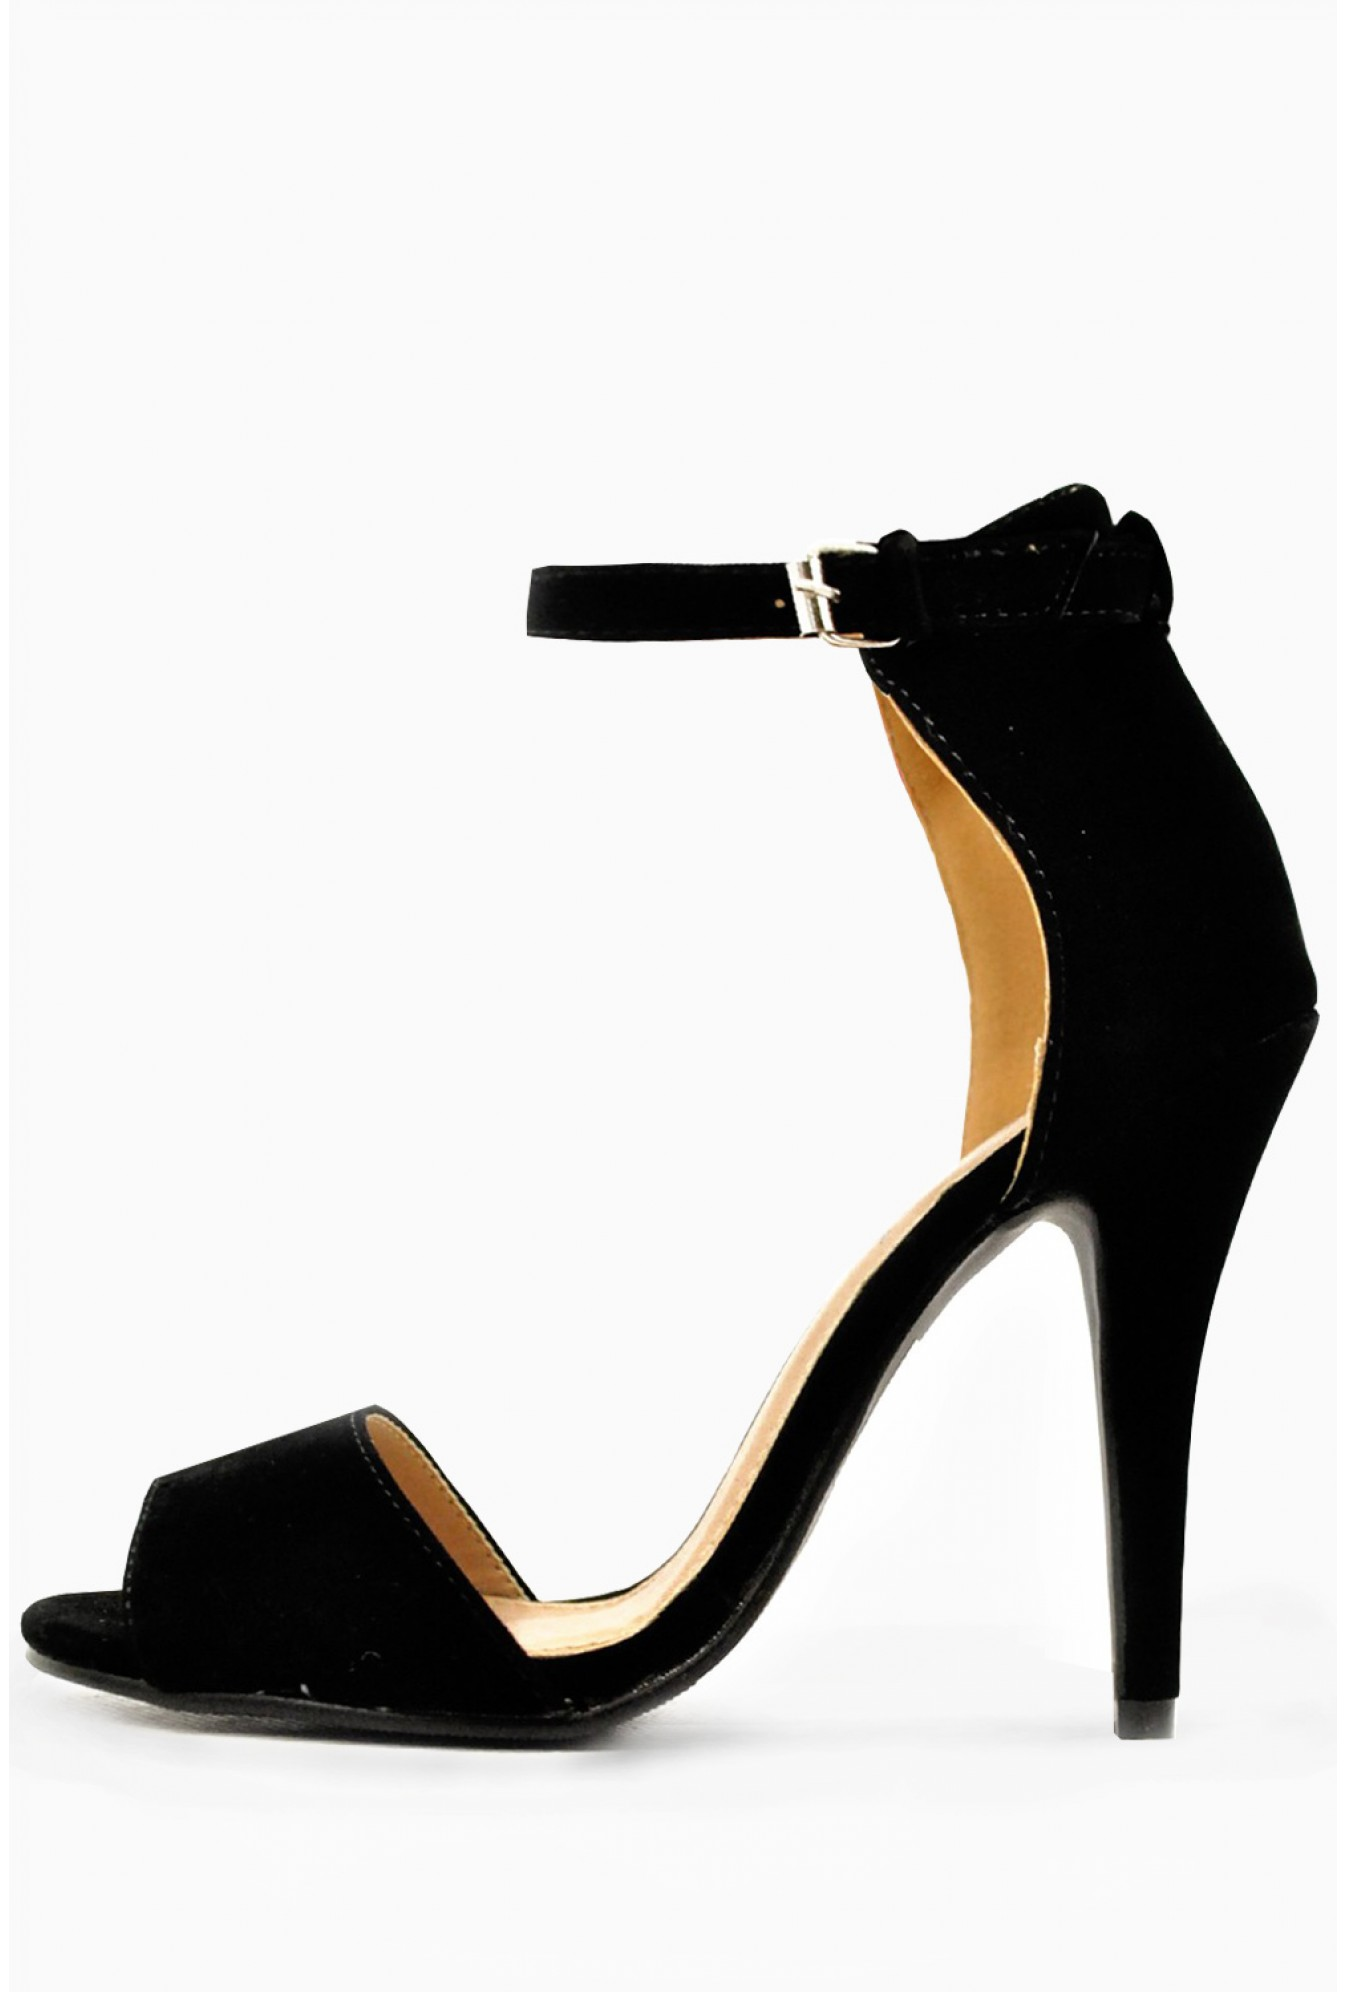 3489824e5cef0 247 Sonya Strappy Mid Heel Sandals in Black Suede   iCLOTHING